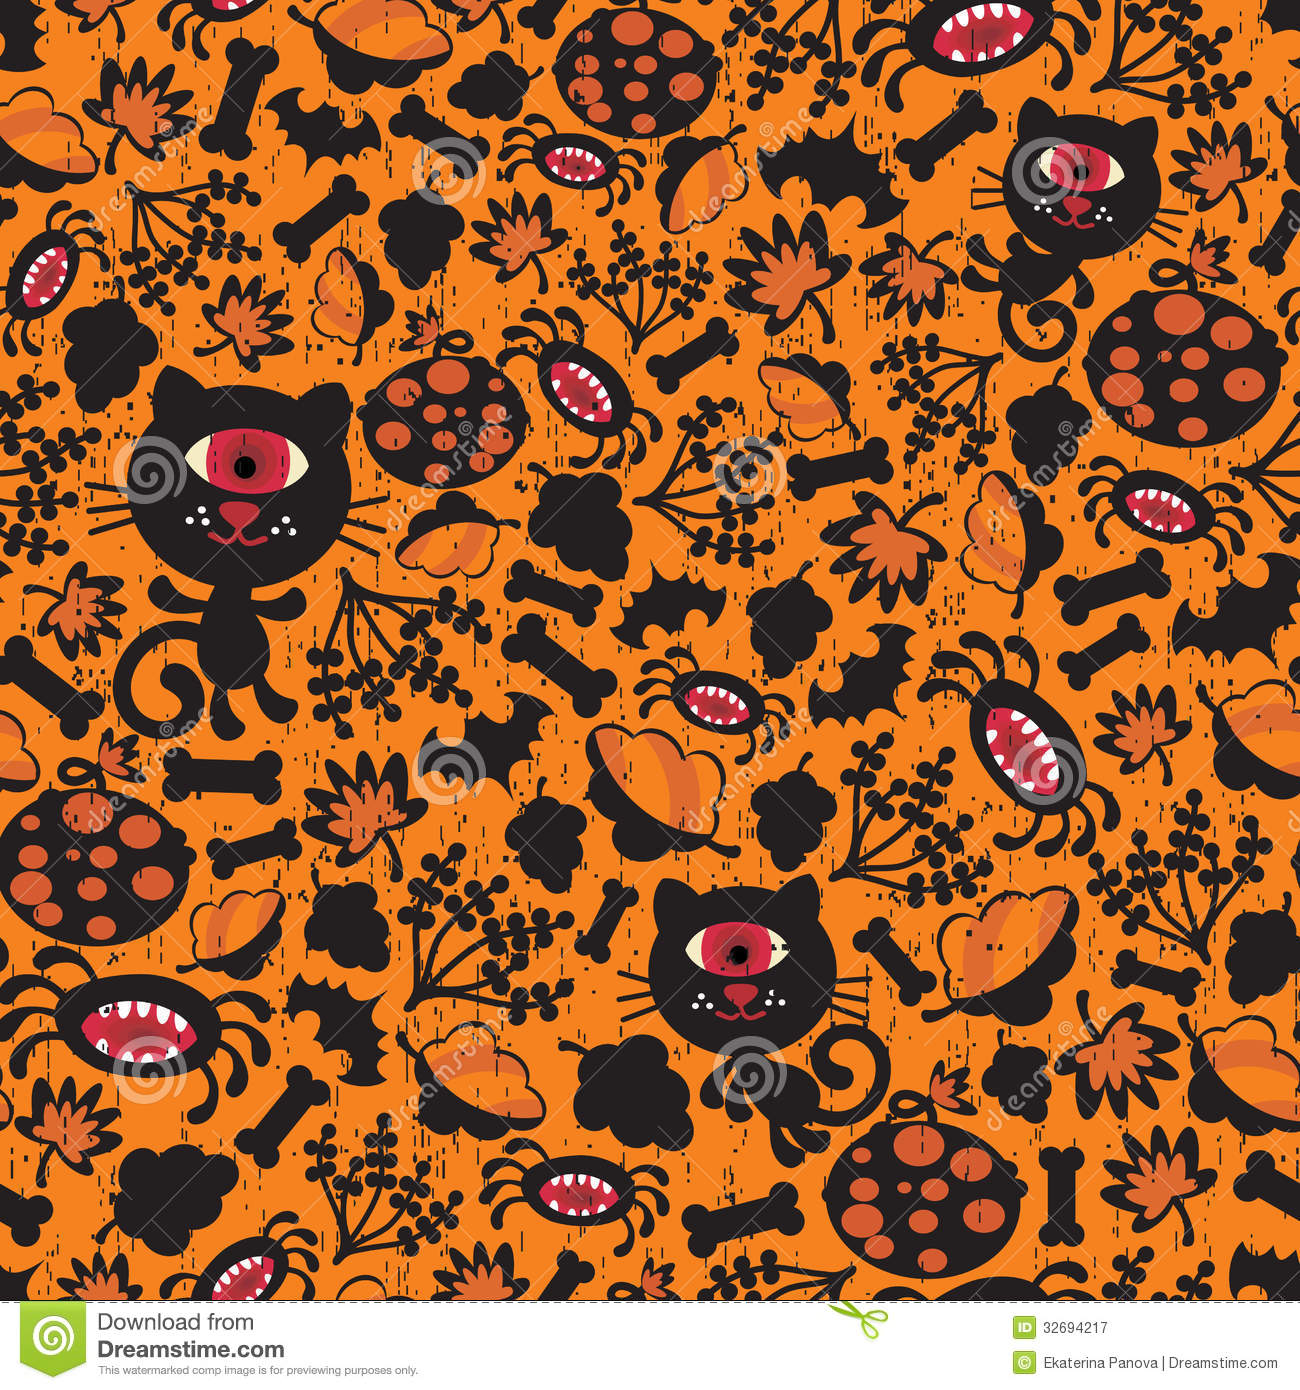 Neon Fall Wallpapers Seamless Halloween Background With Monsters Royalty Free